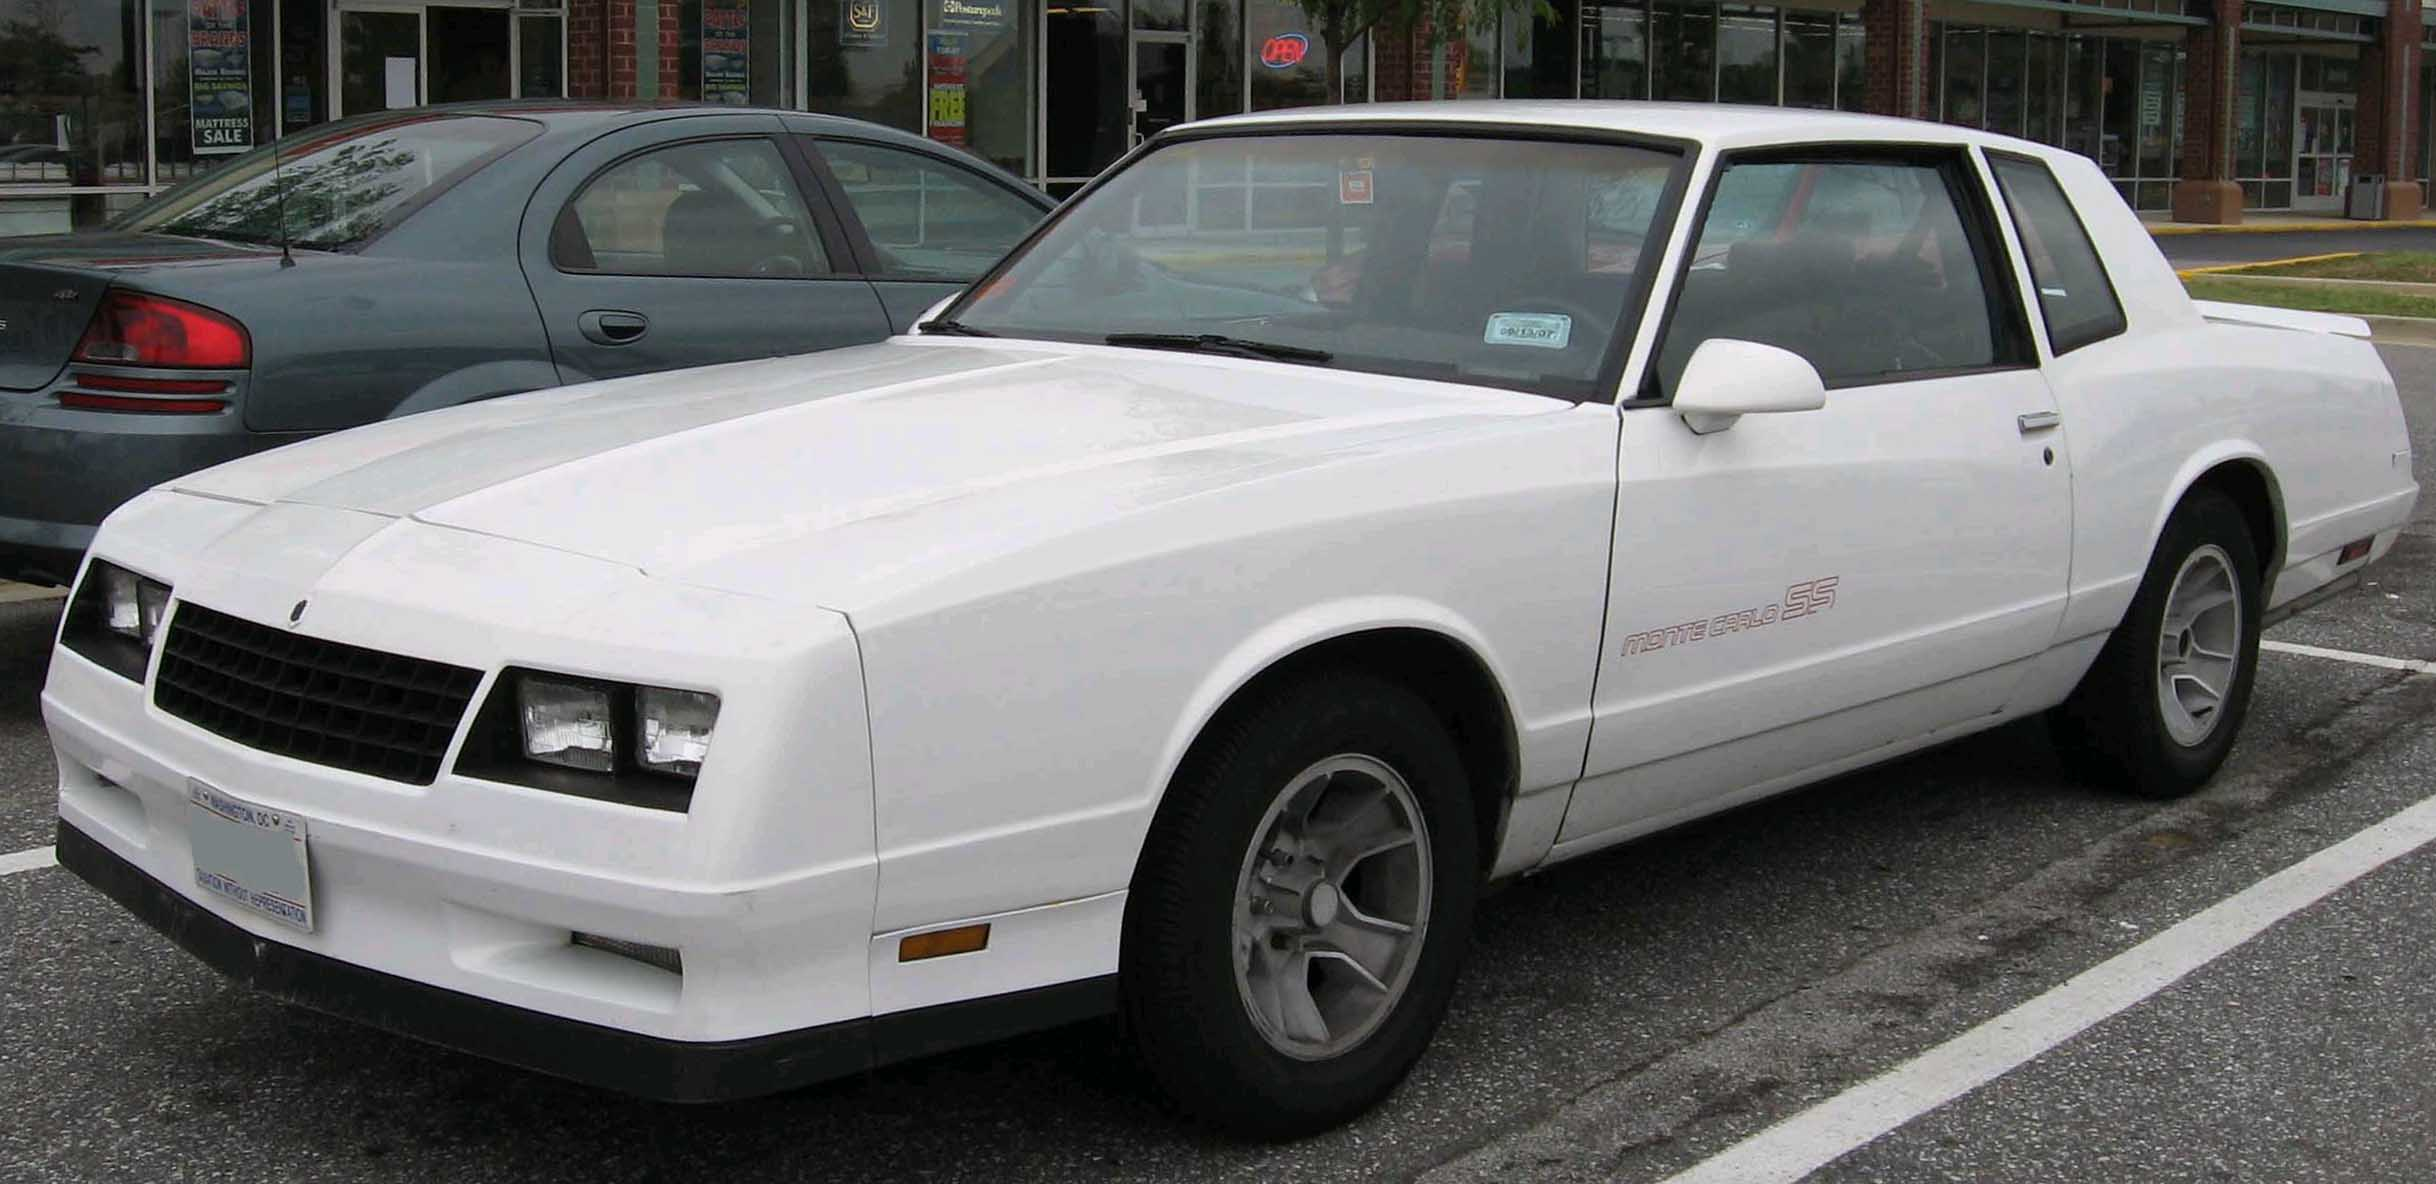 chevrolet monte carlo pictures #7